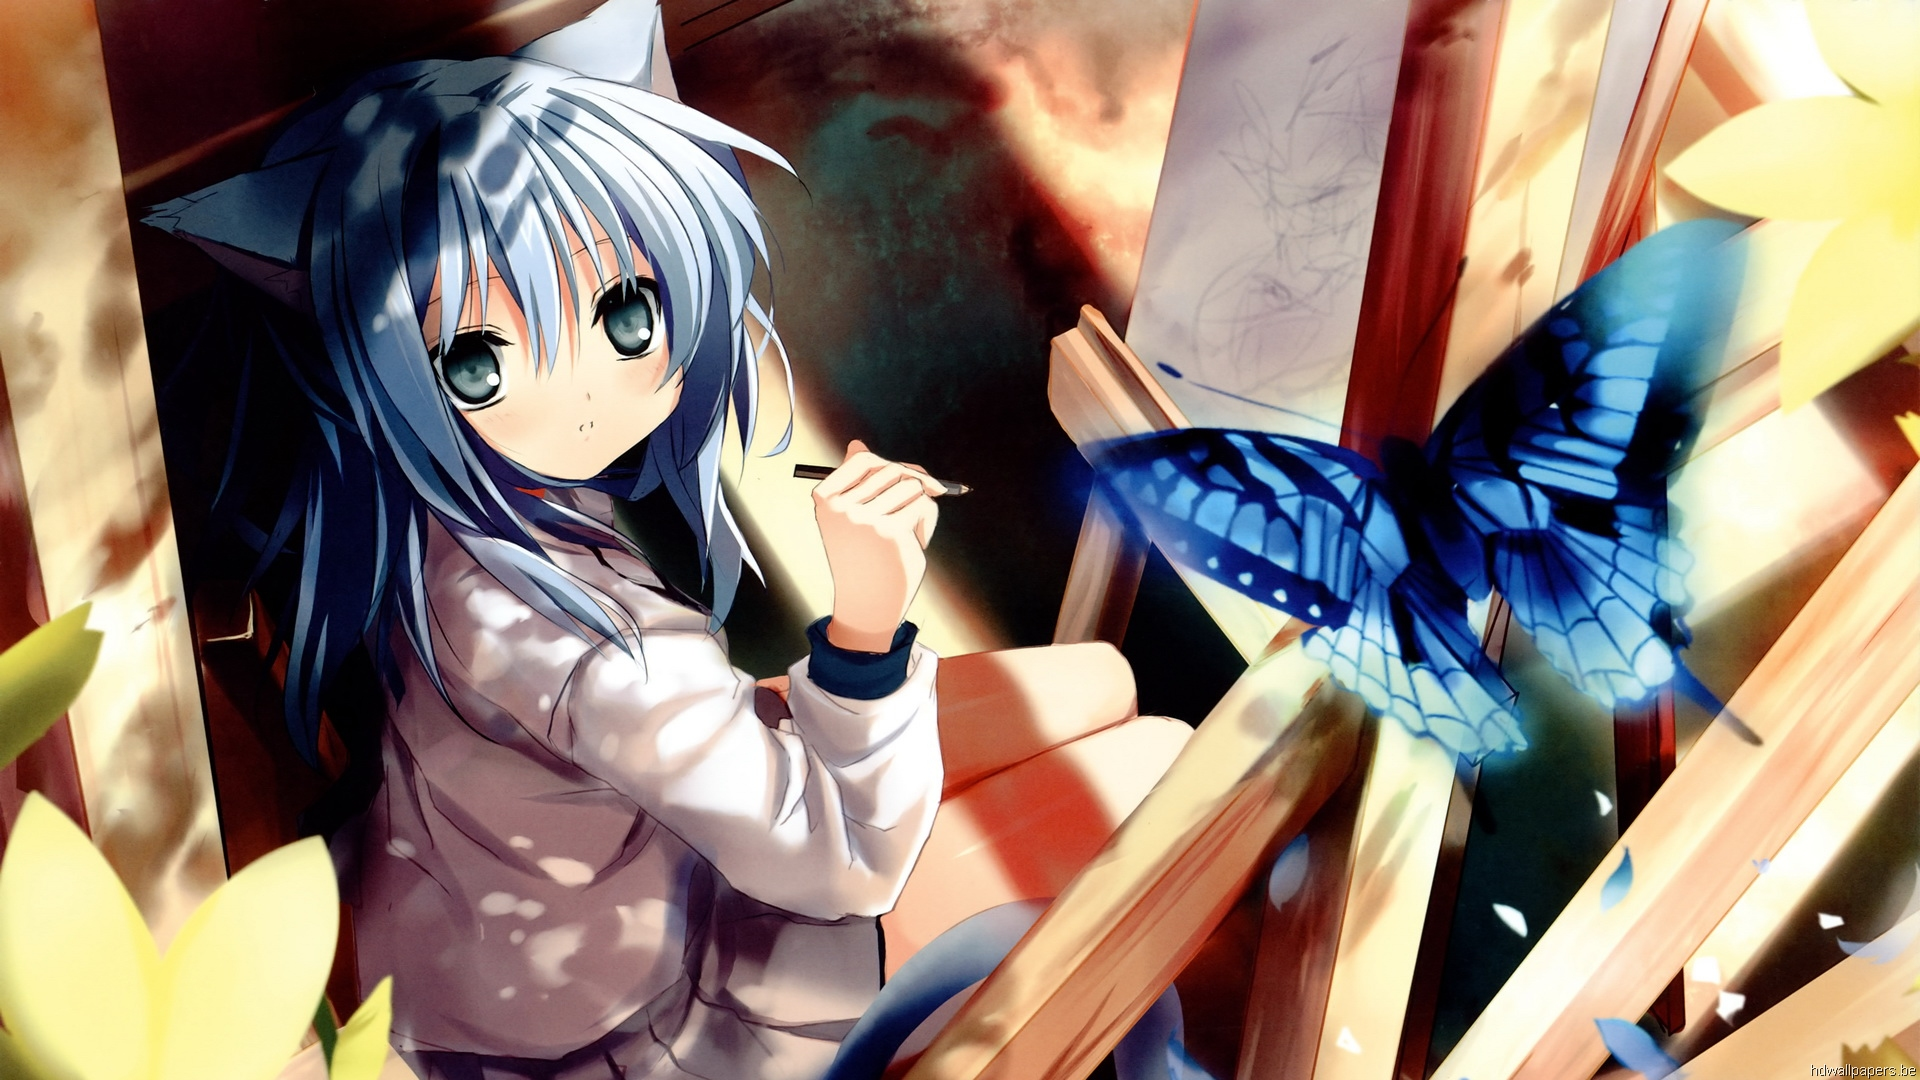 Download Cute Girl Anime From Zet Wallpaper 19201080 Full Hd 1920x1080